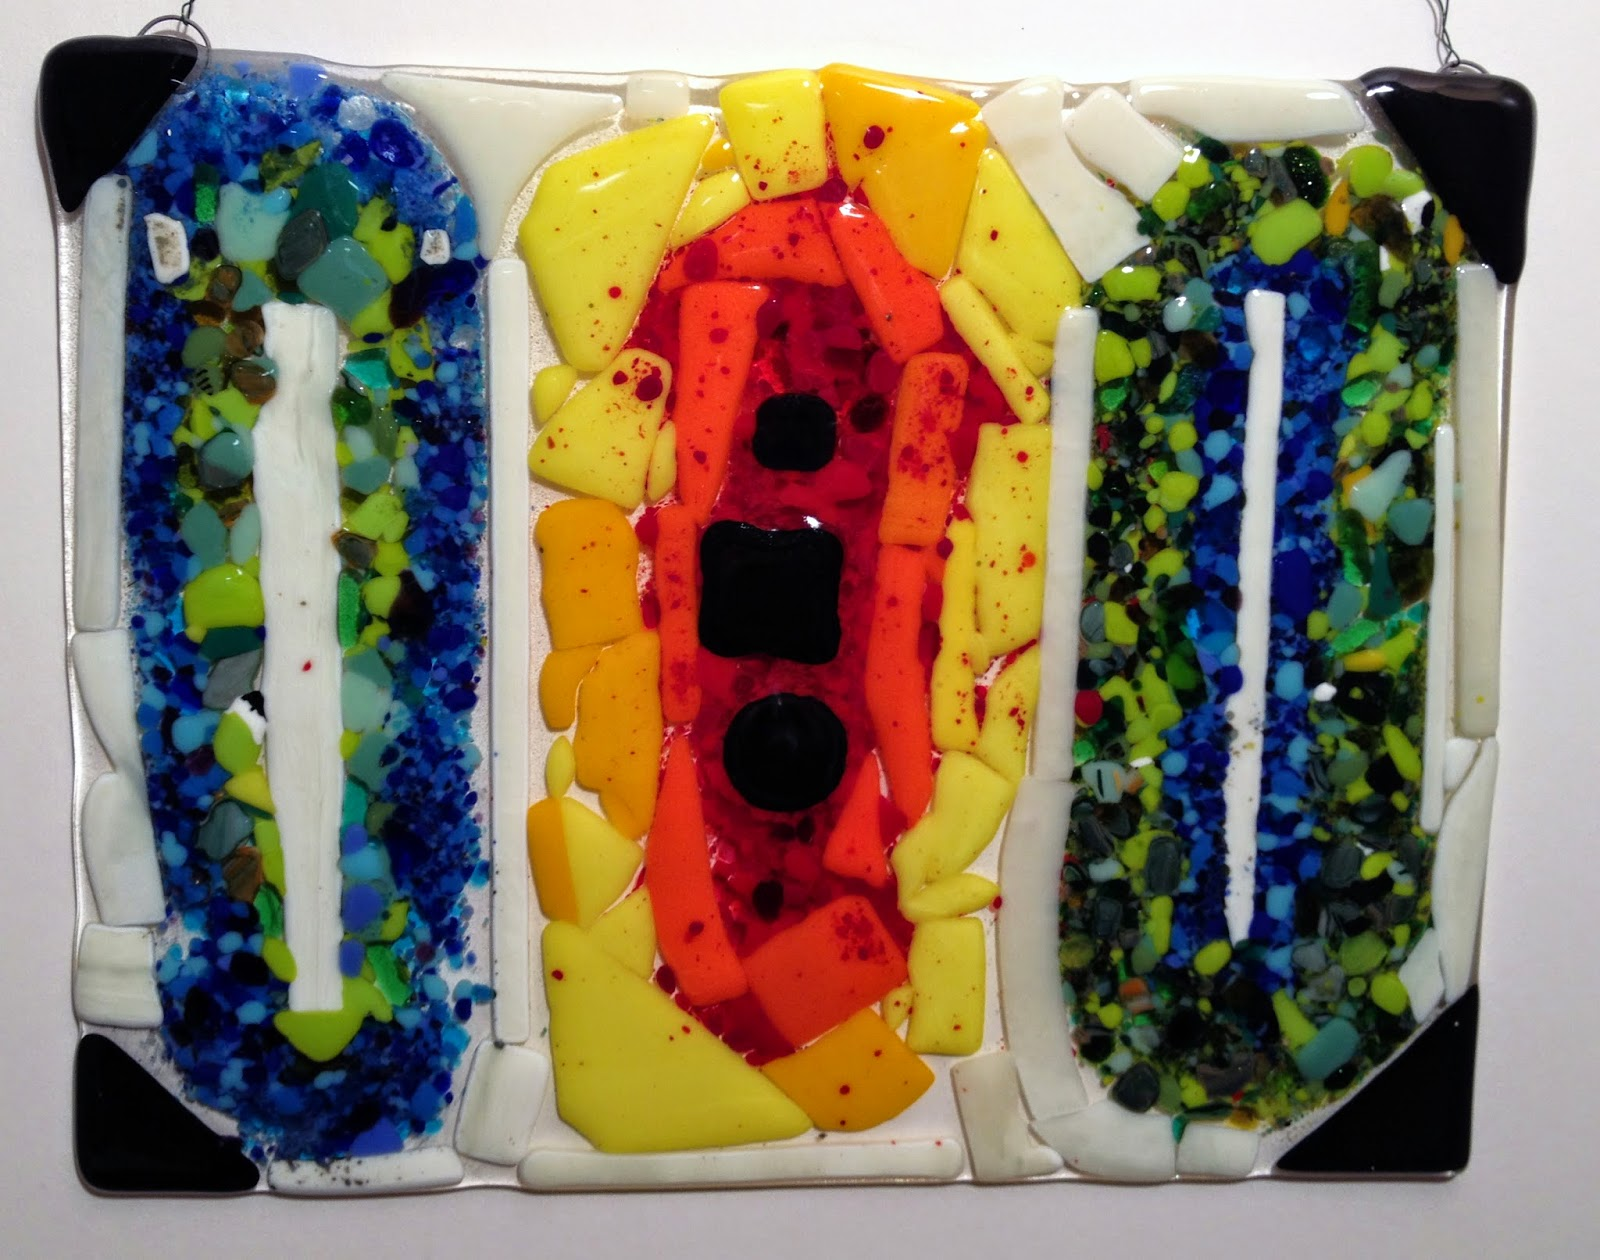 Fused Glass Window in the style of Kandinsky